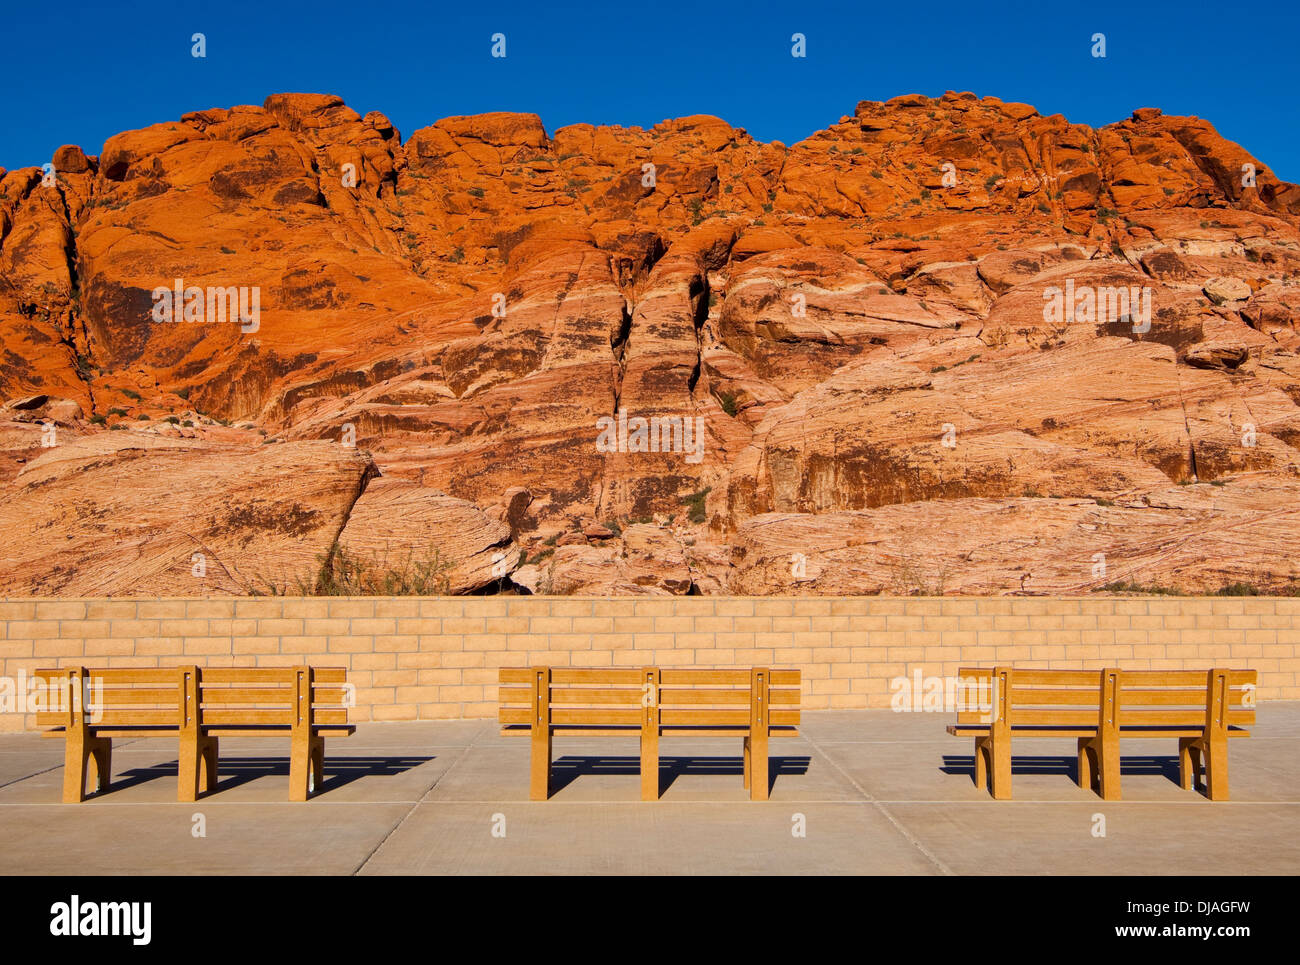 Des bancs de parc face à Red Rock Canyon, Nevada, United States Photo Stock